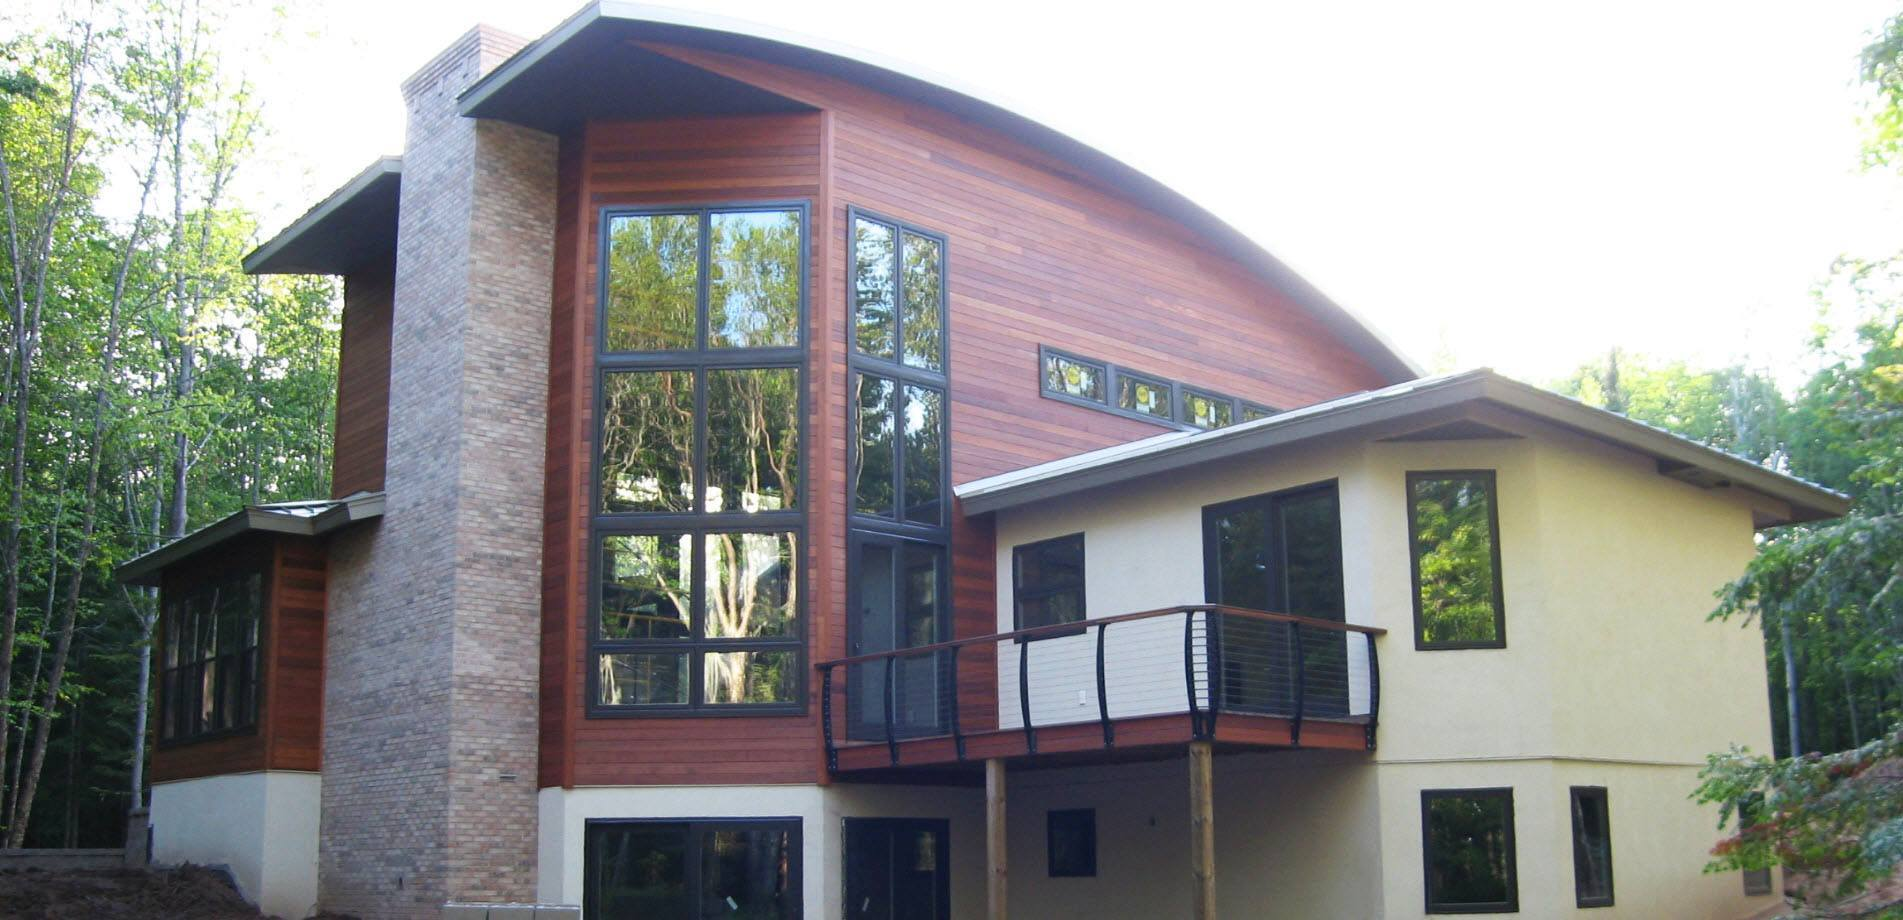 Modern curved roof with curved cable railing posts